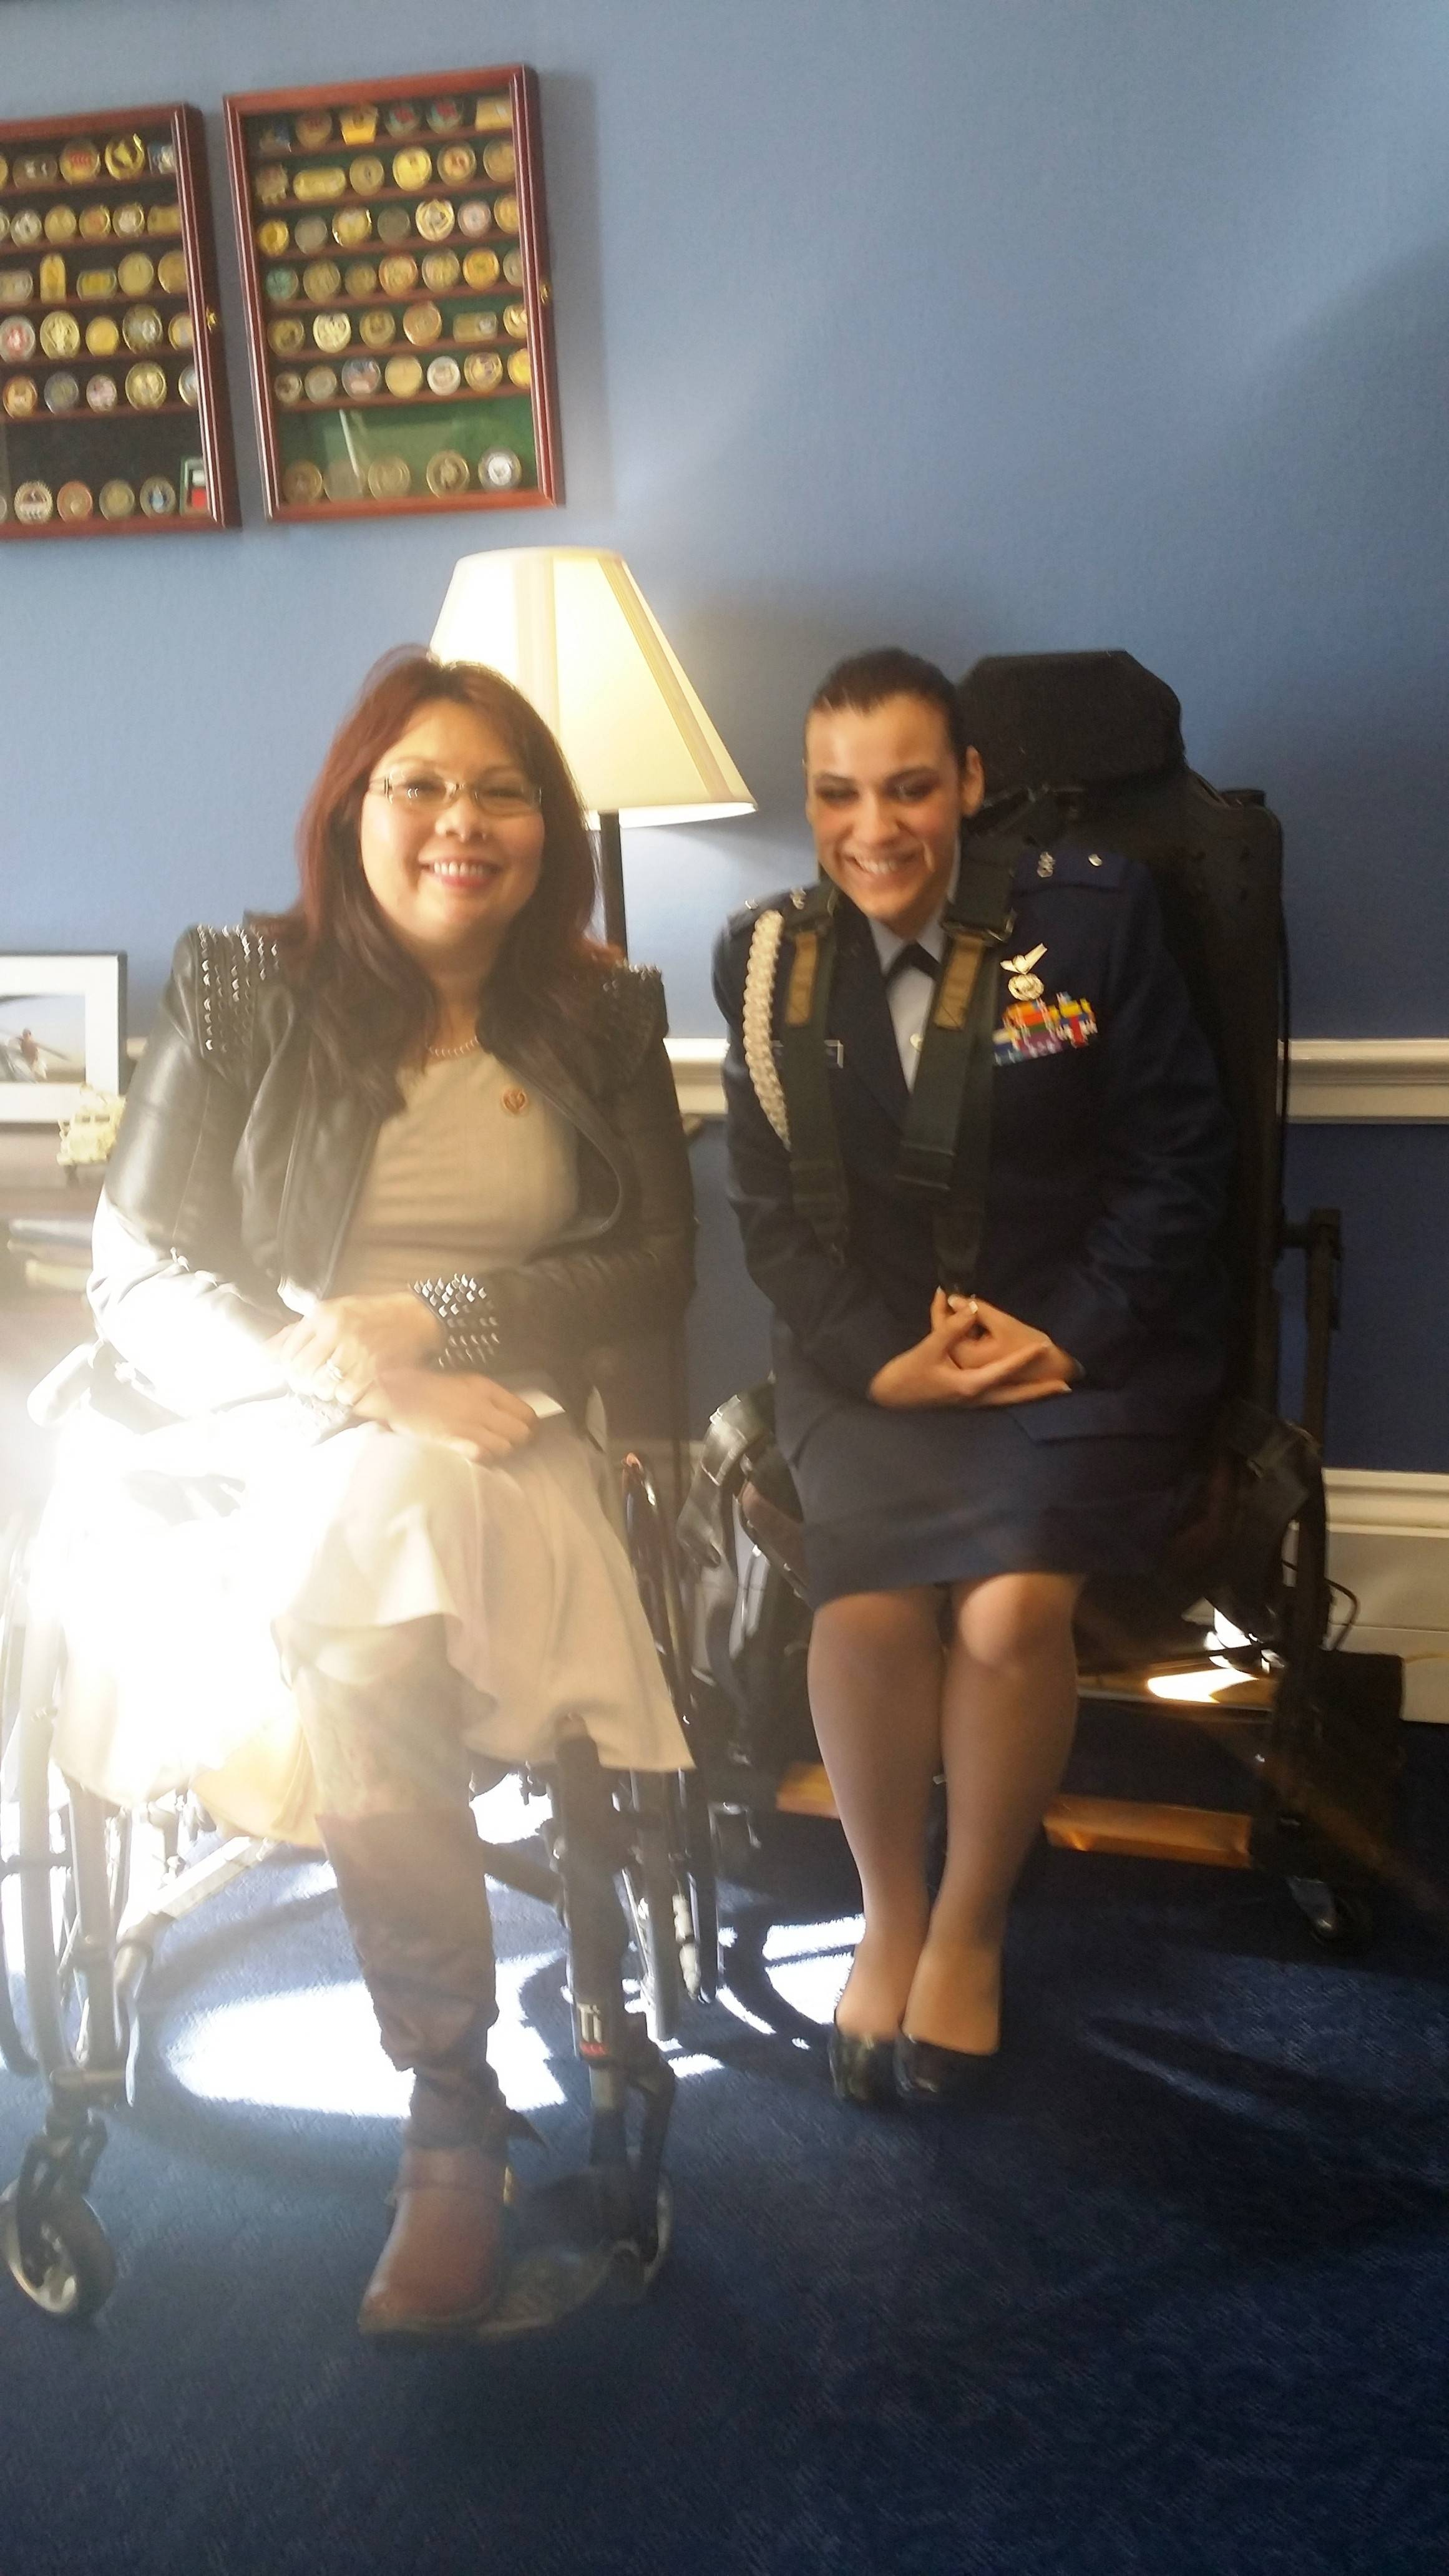 Streamwood High School student Alyssette Rosado meets with Congresswoman Tammy Duckworth in Washington, D.C.